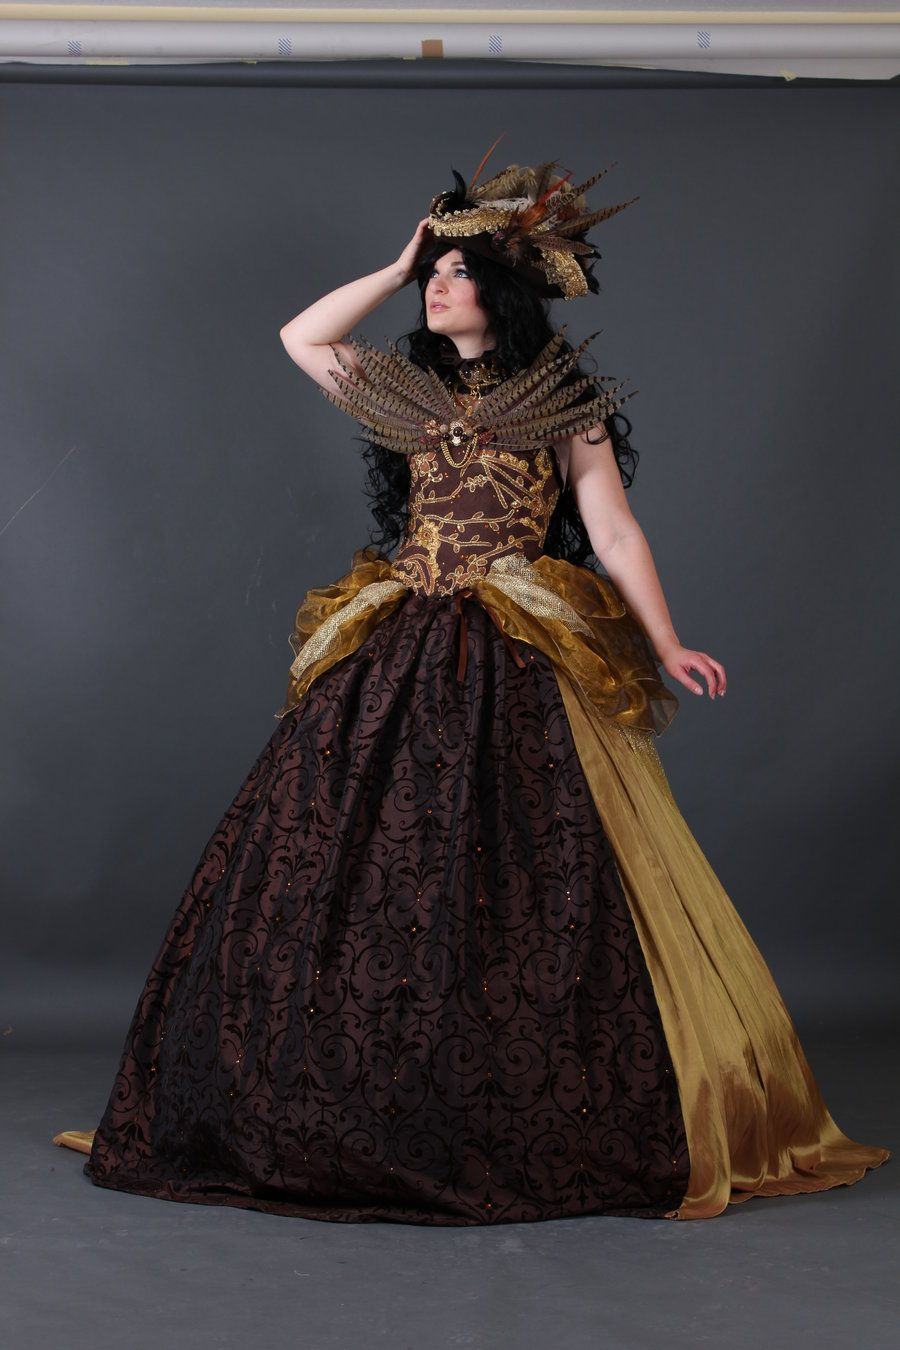 Pin by Kat Taylor on Steampunk Ball Gown Ideas | Pinterest | Gowns ...